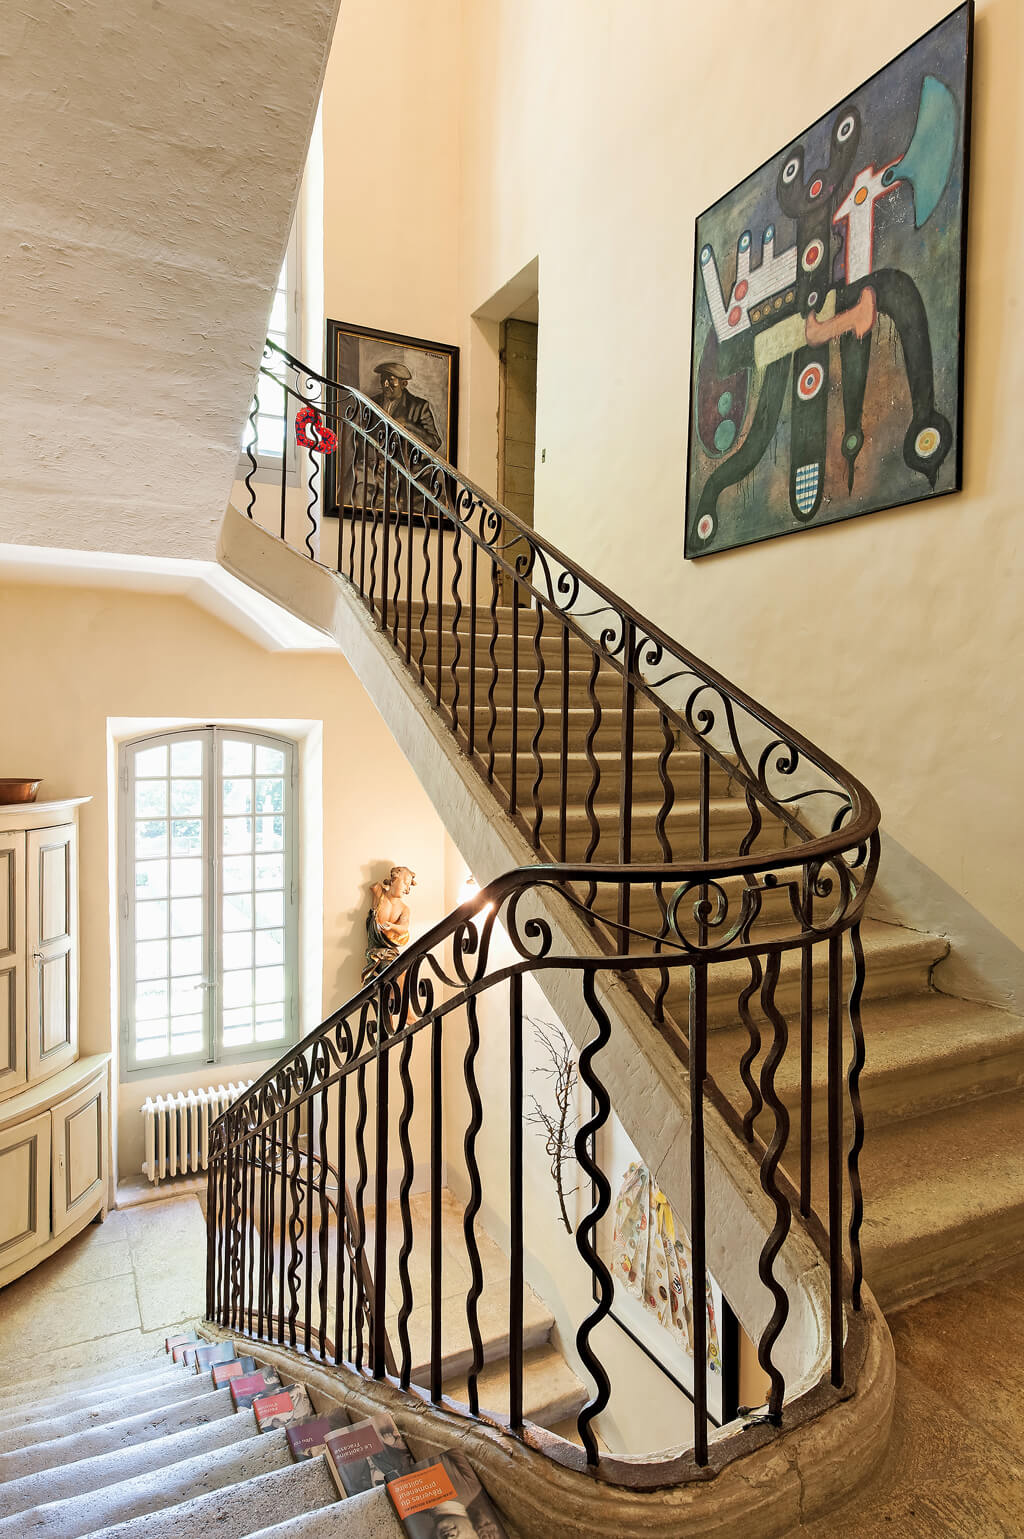 Decor  Travel  The French Chateau Mireille StRmydeProvence France  Cool Chic Style Fashion